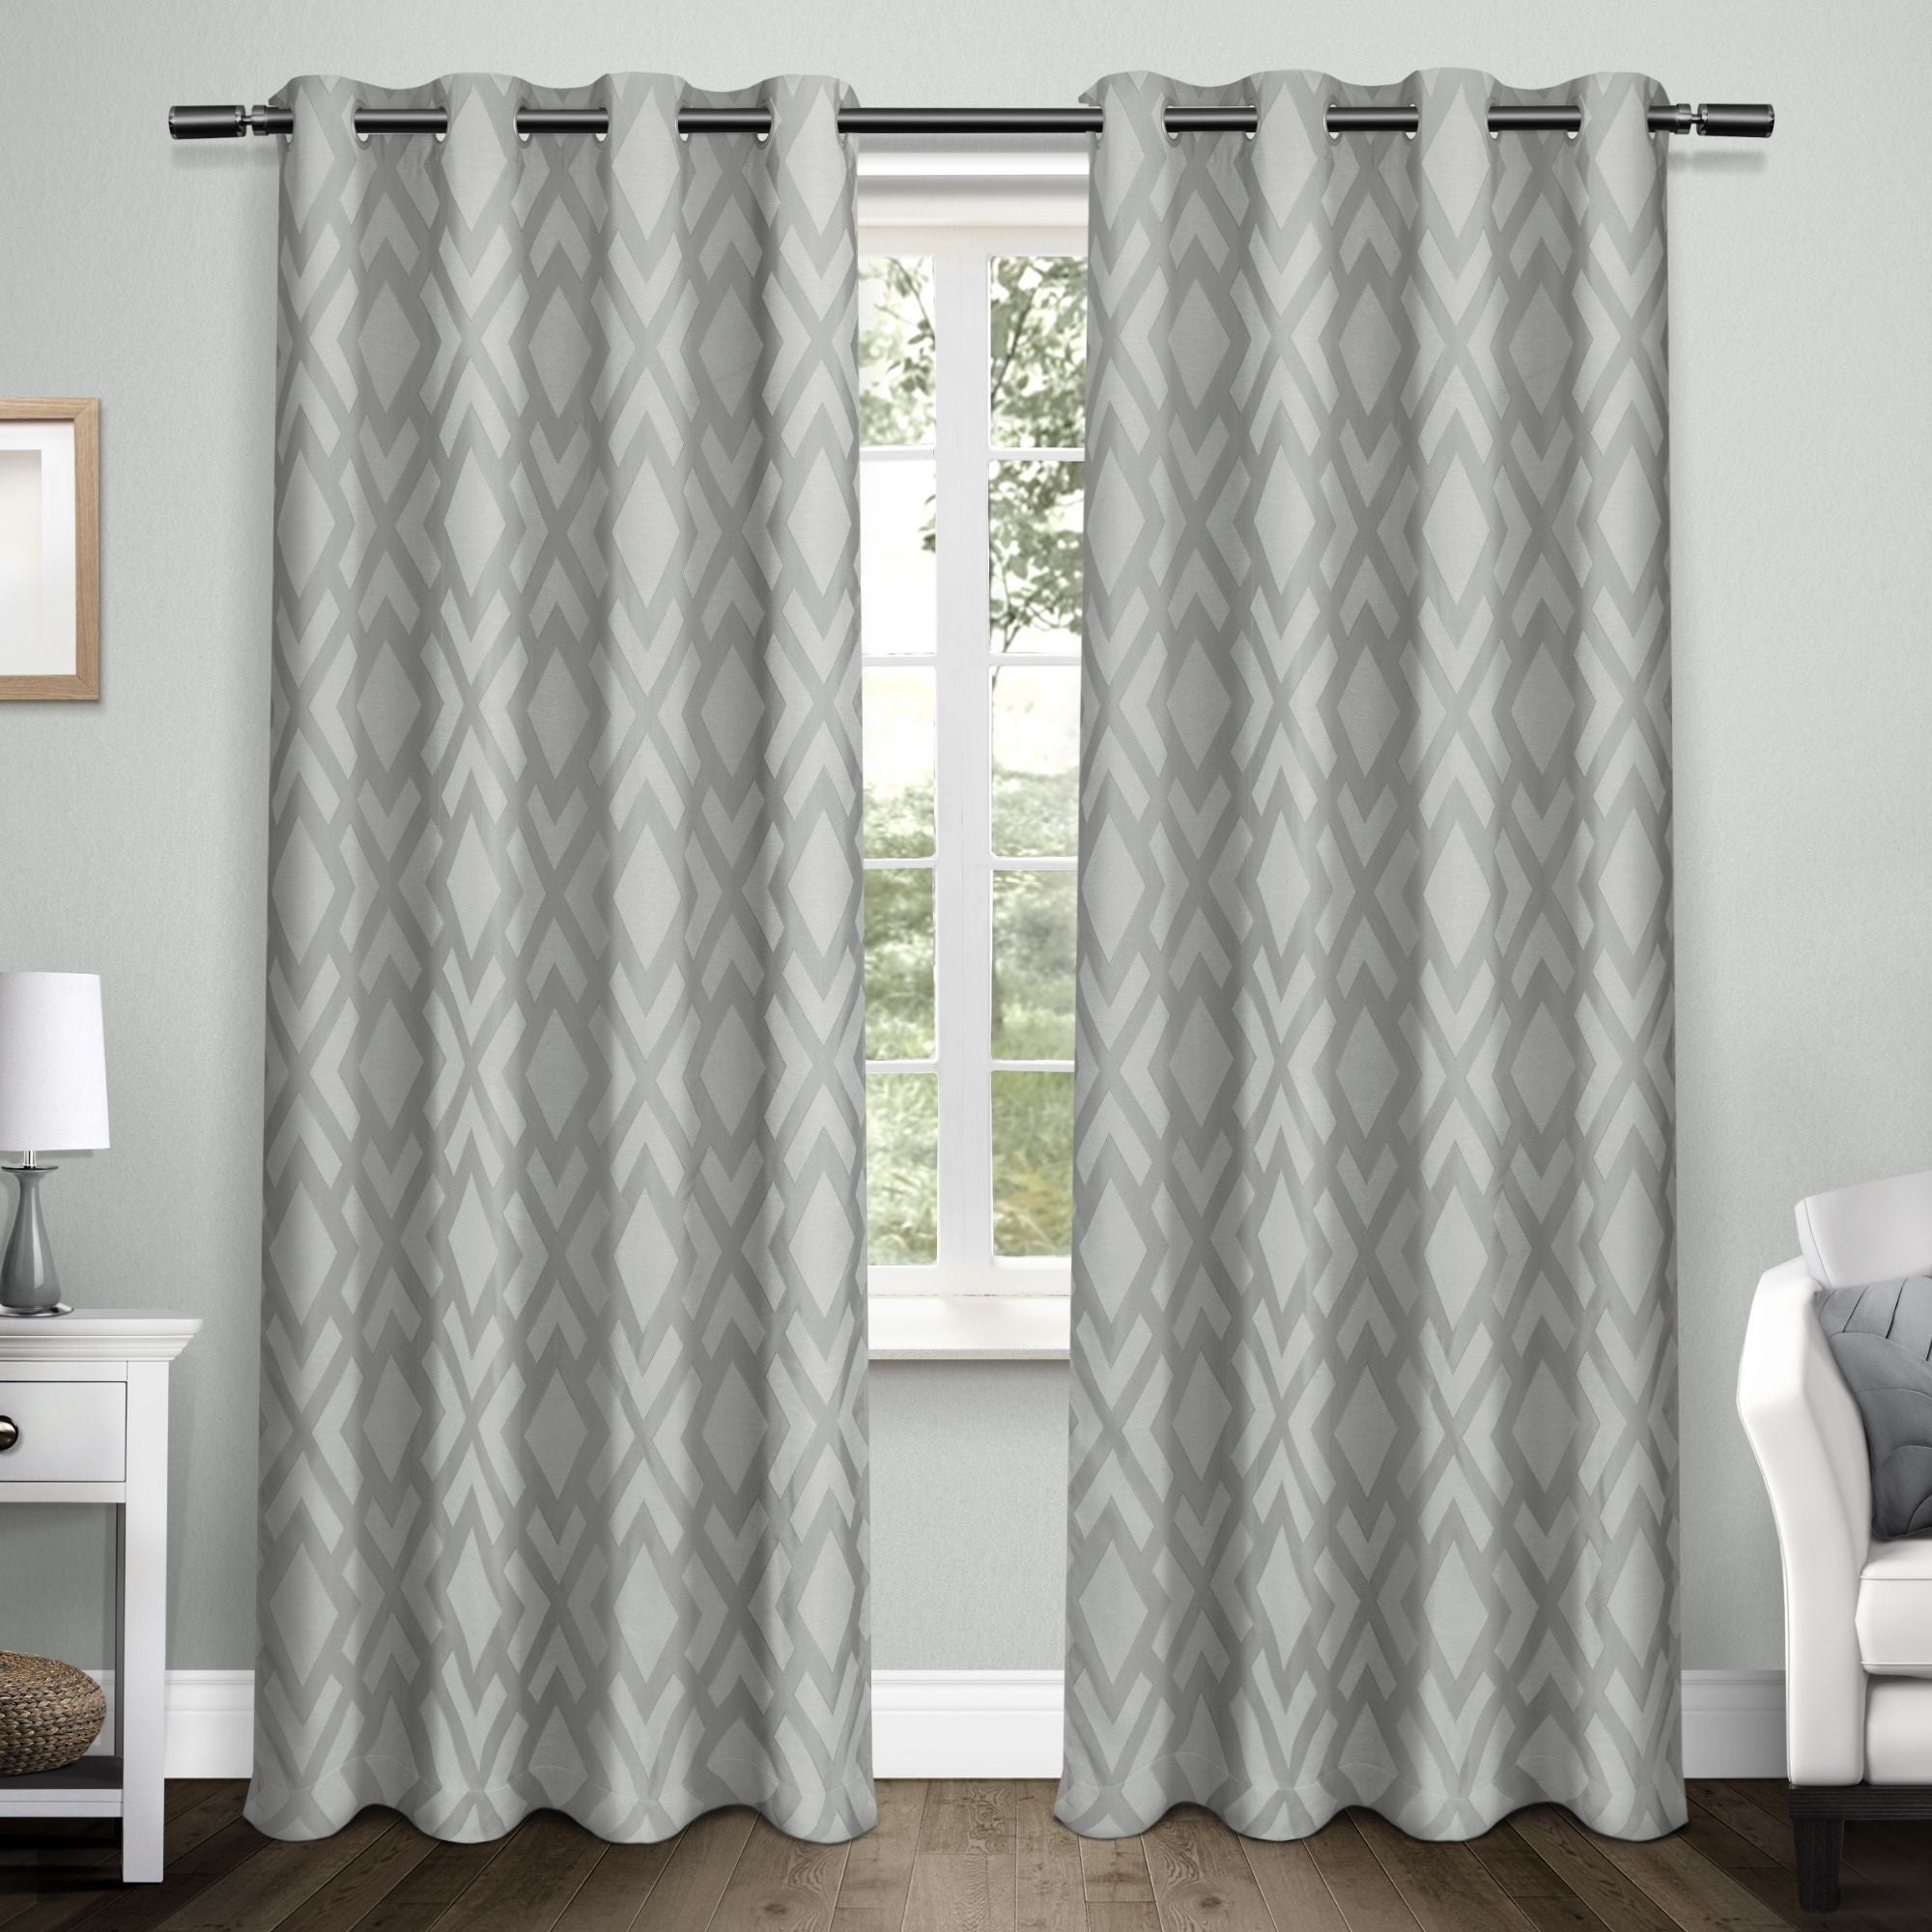 Woven Blackout Curtain Panel Pairs With Grommet Top Intended For Most Popular Ati Home Easton Thermal Woven Blackout Grommet Top Curtain Panel Pair (View 4 of 20)